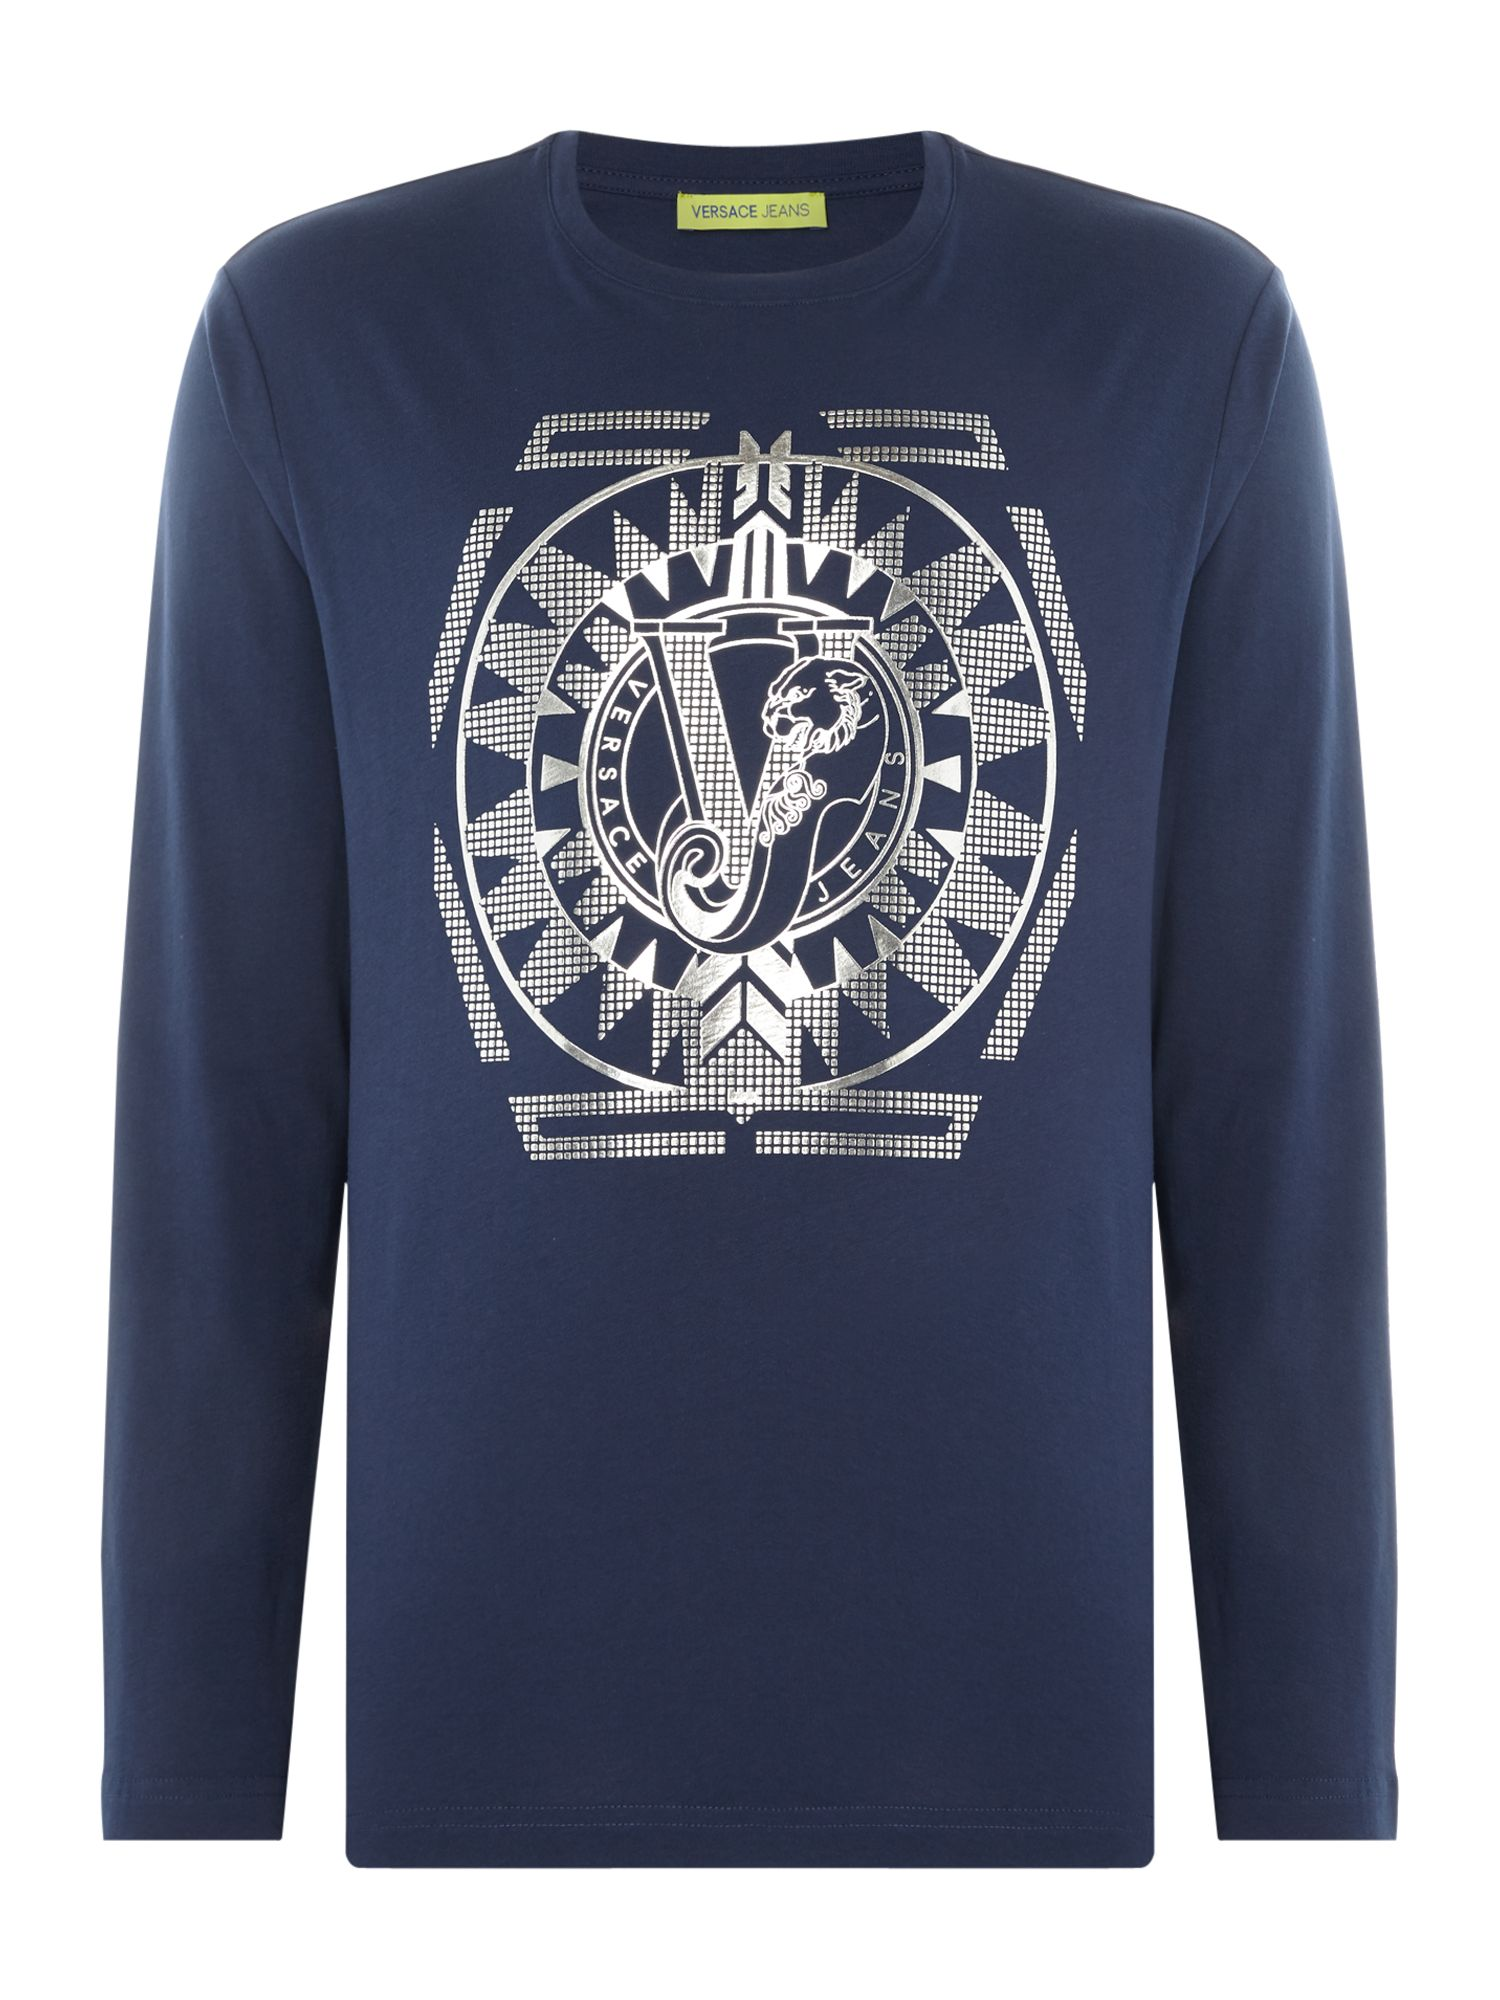 Men's Versace Jeans Foil Geo Logo Crew Neck Long Sleeve T-Shirt, Blue